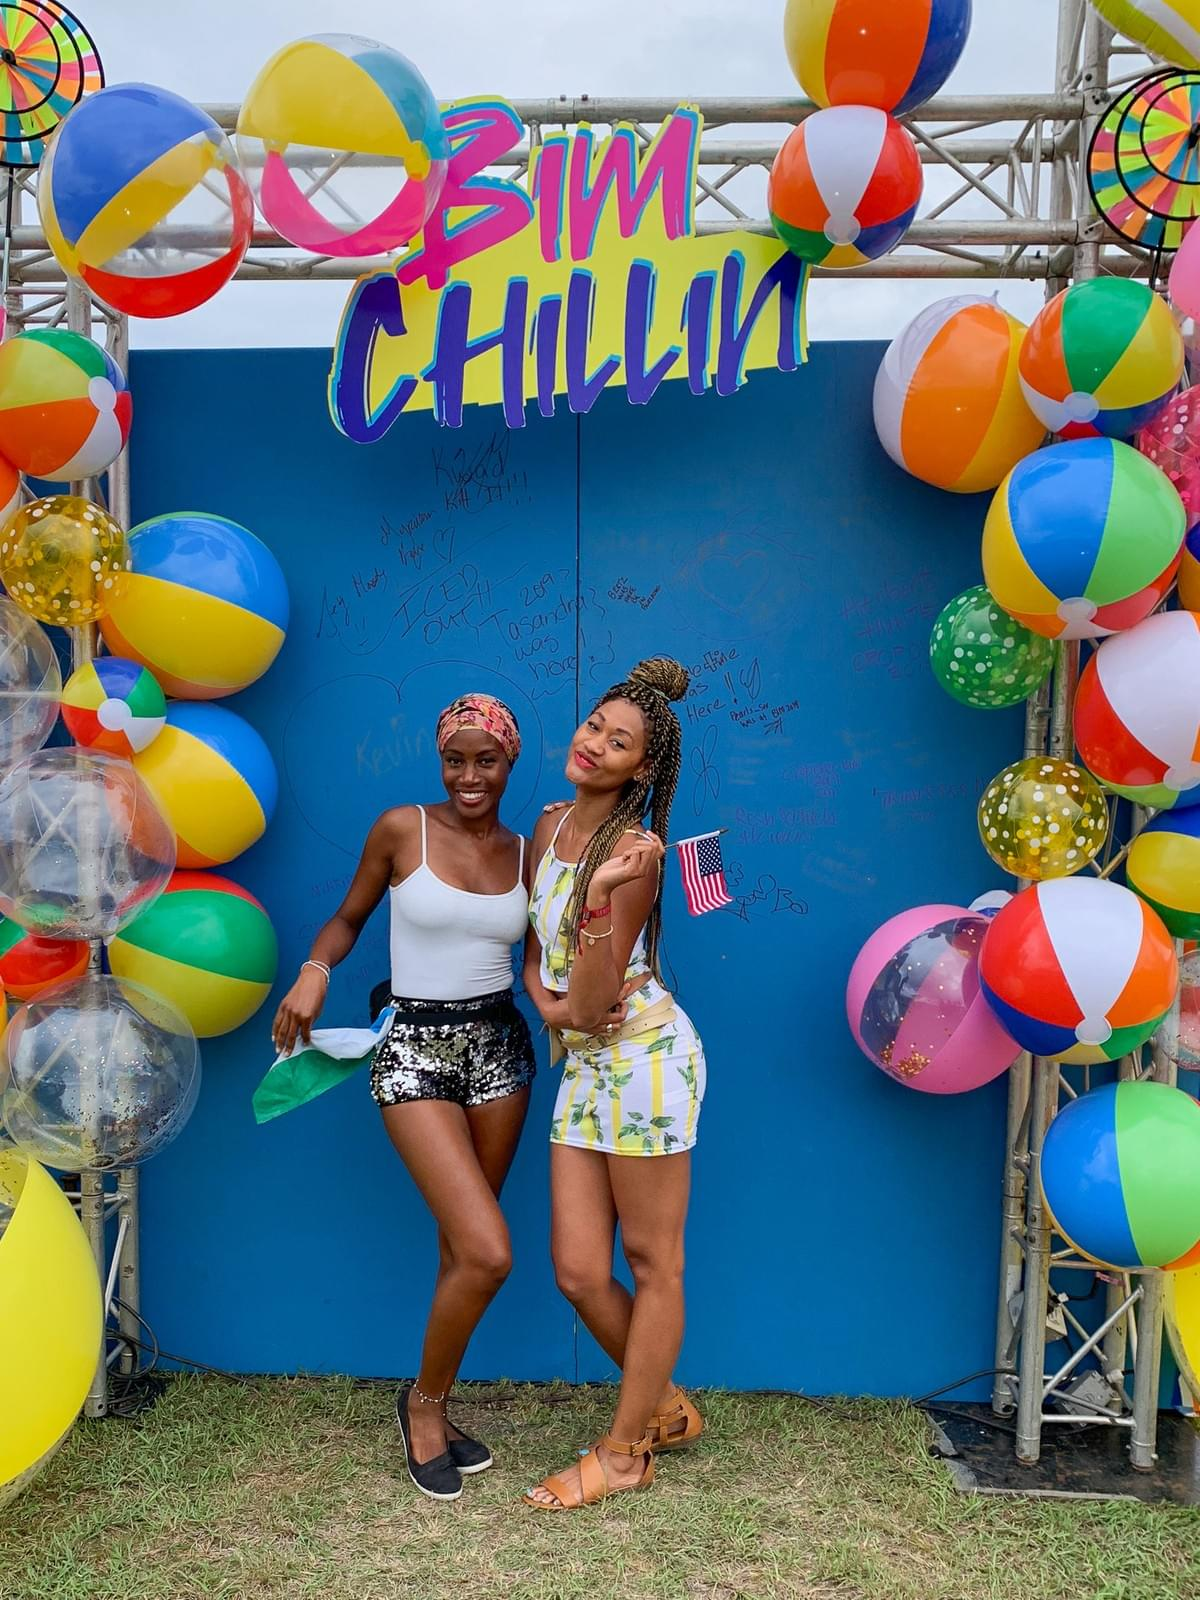 Two girls posing at the BIM Chillin Cooler fete in Barbados for Crop Over